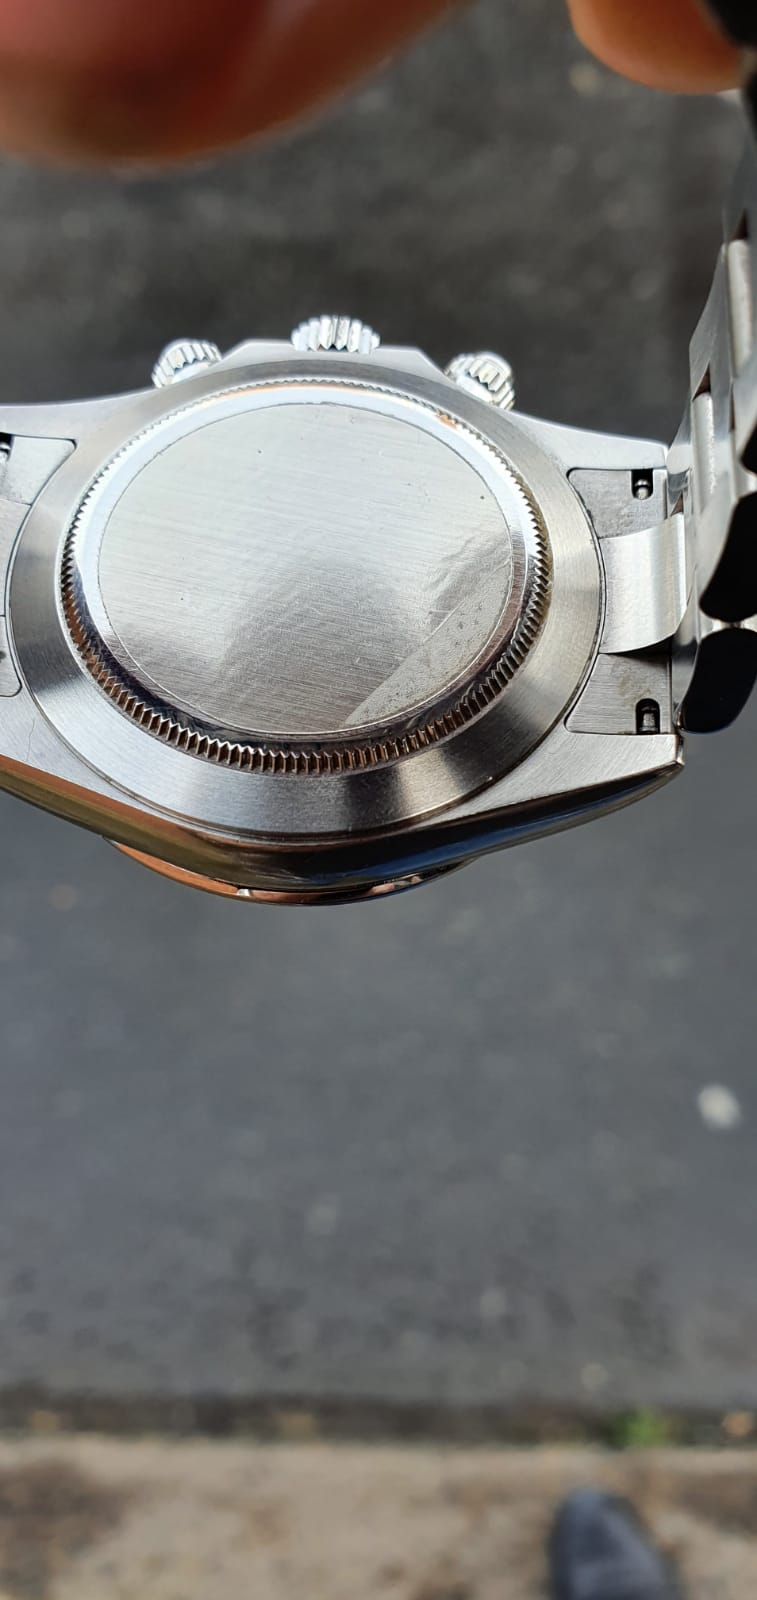 Rolex Daytona ref116520 Box and Papers - Image 7 of 8